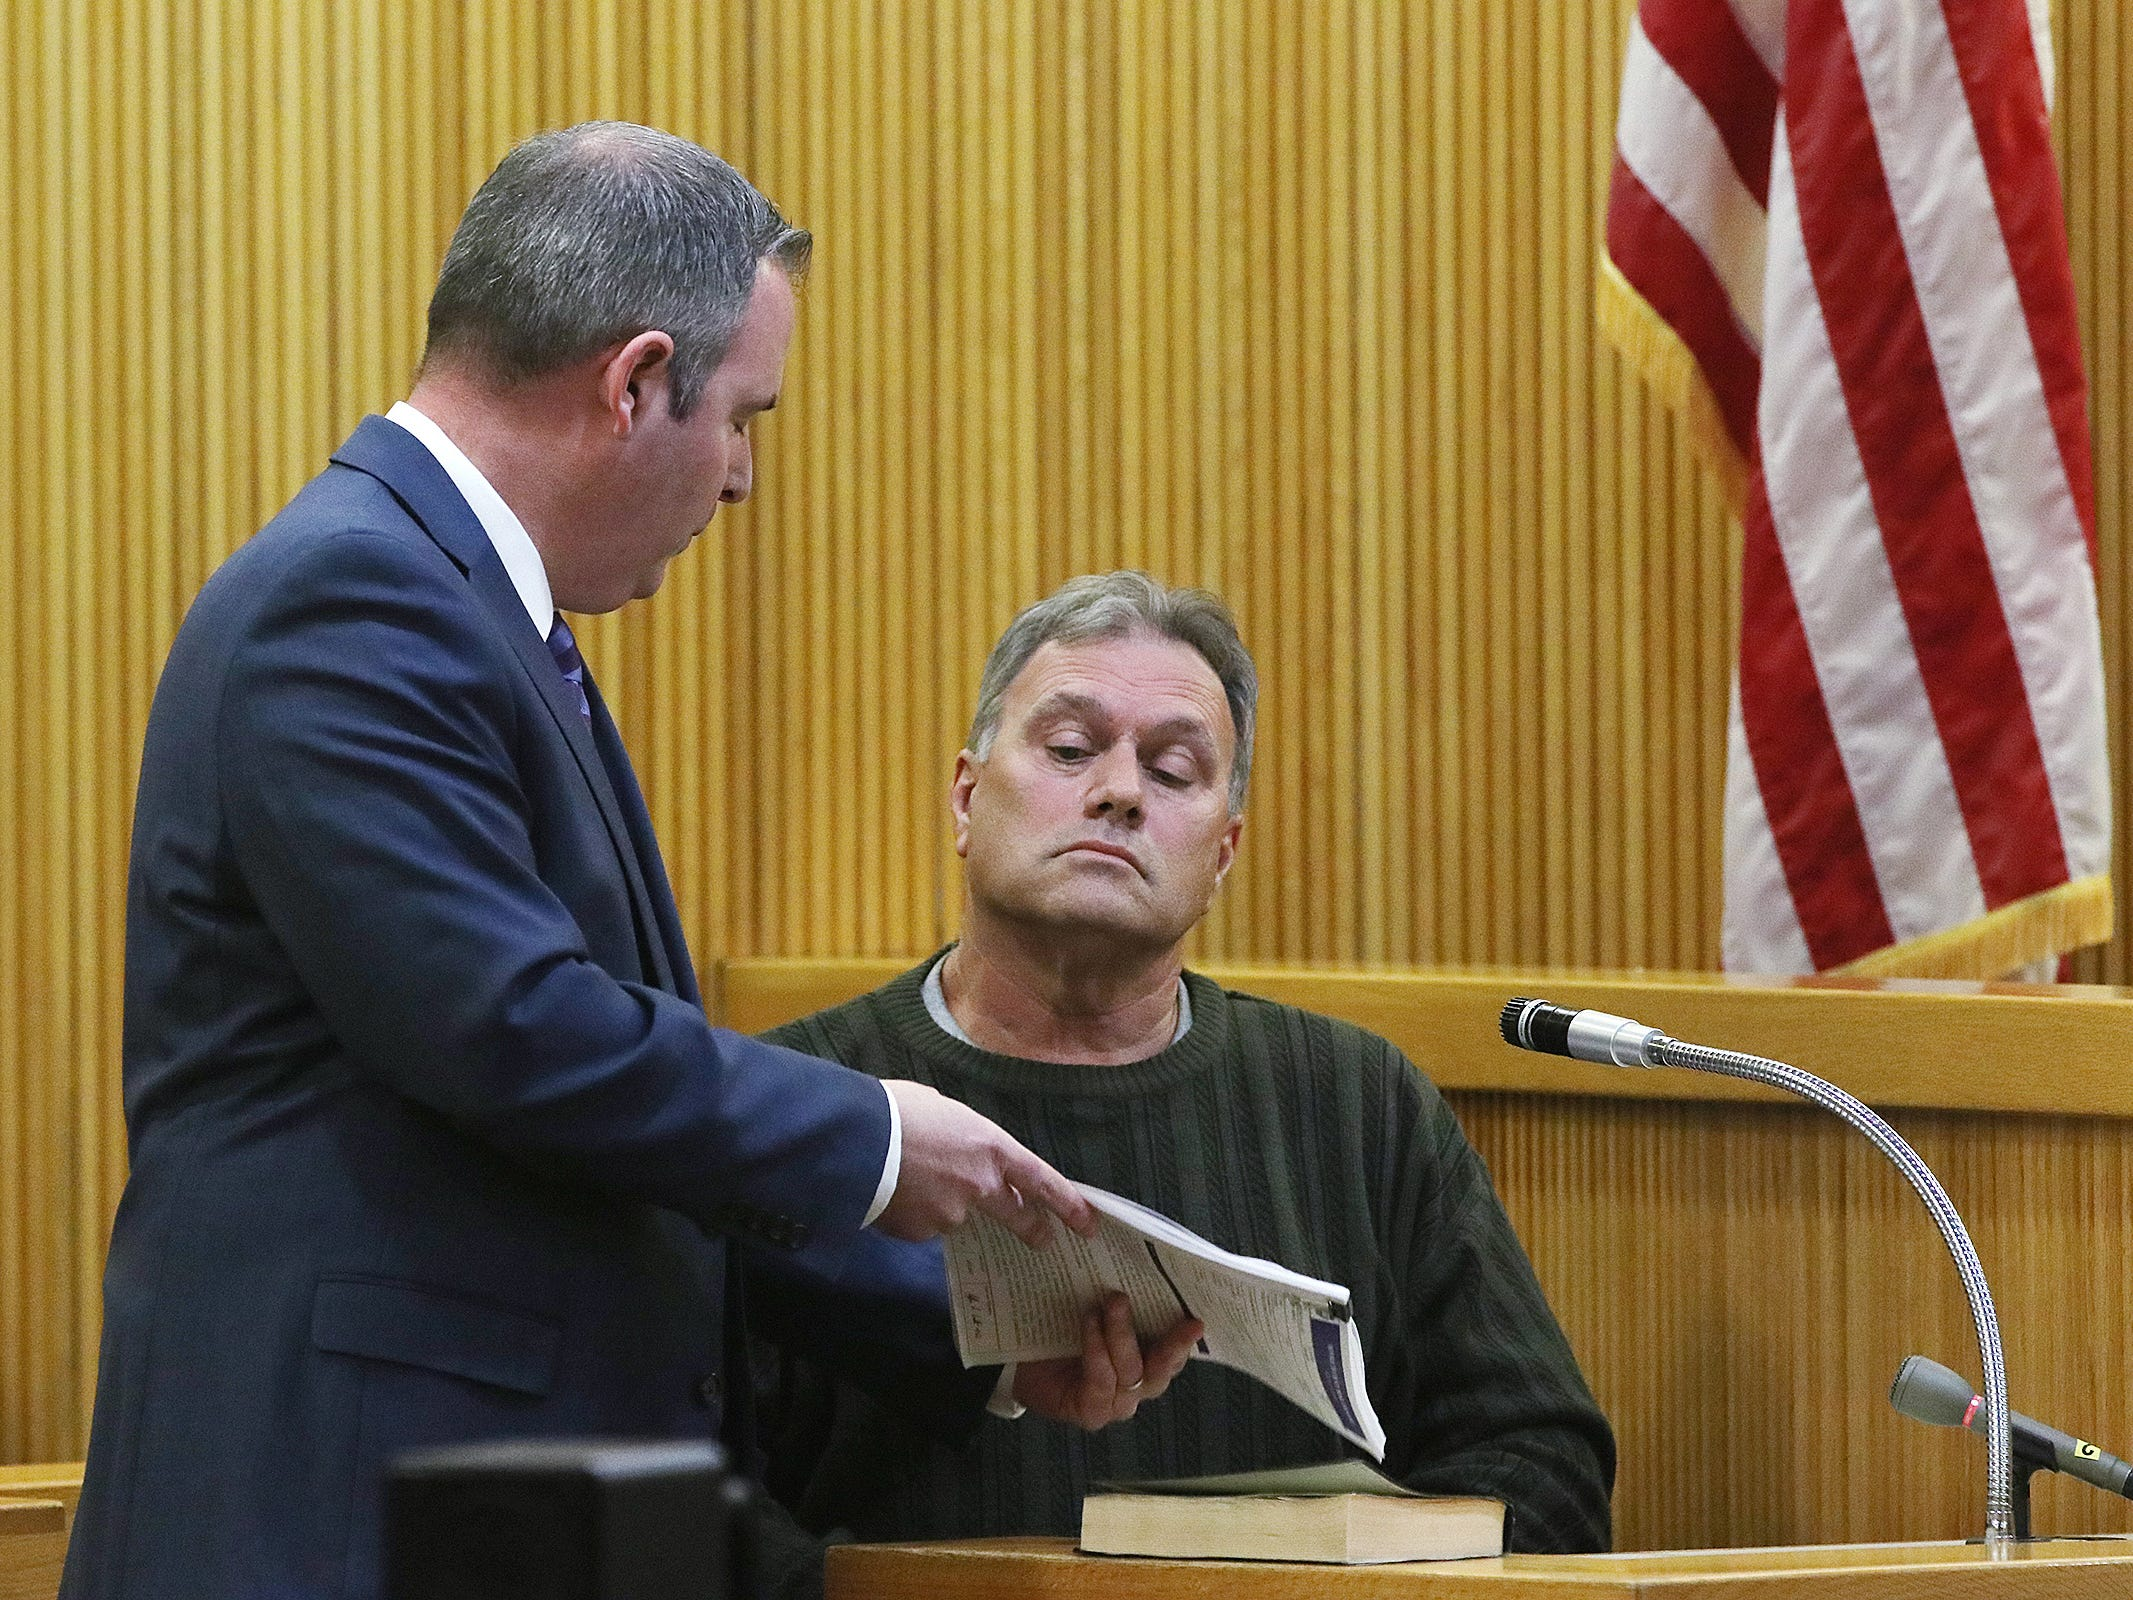 Craig Hetzel of Neptune is questioned by Christopher Decker, Monmouth County assistant prosecutor, as he testifies that he saw a woman who resembled Sarah Stern on the day she went missing during the trial of Liam McAtasney, who is charged with the murder of former high school classmate, Sarah Stern, before Superior Court Judge Richard W. English at the Monmouth County Courthouse in Freehold, NJ Wednesday, February 20, 2019.